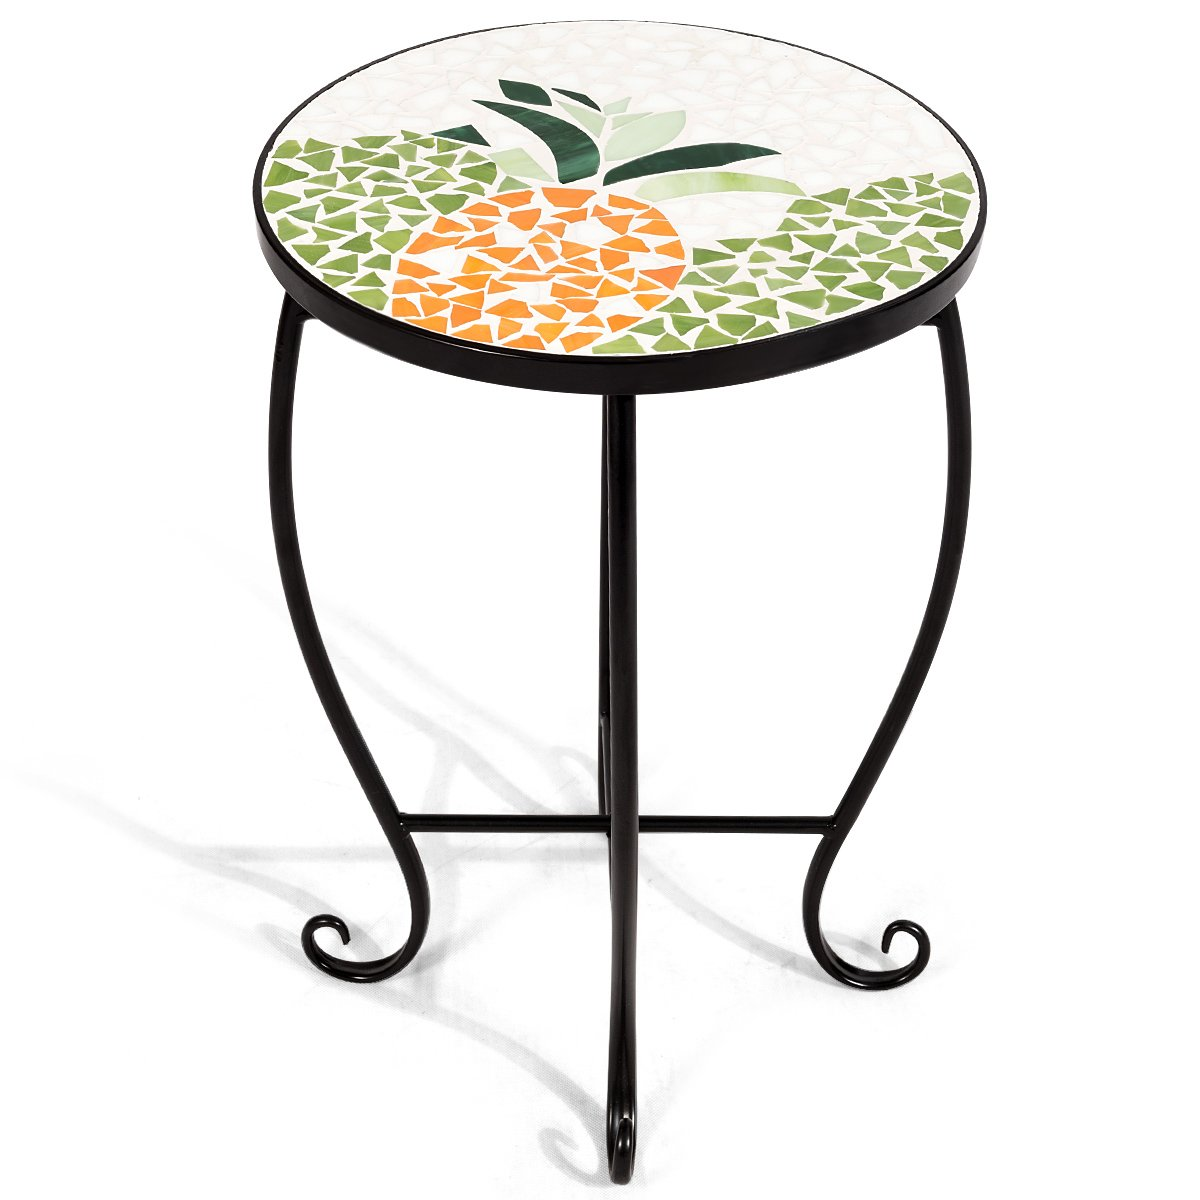 giantex mosaic round side accent table patio plant stand porch beach theme balcony back deck pool oak and glass nest tables west elm wood coffee ashley signature metal dining